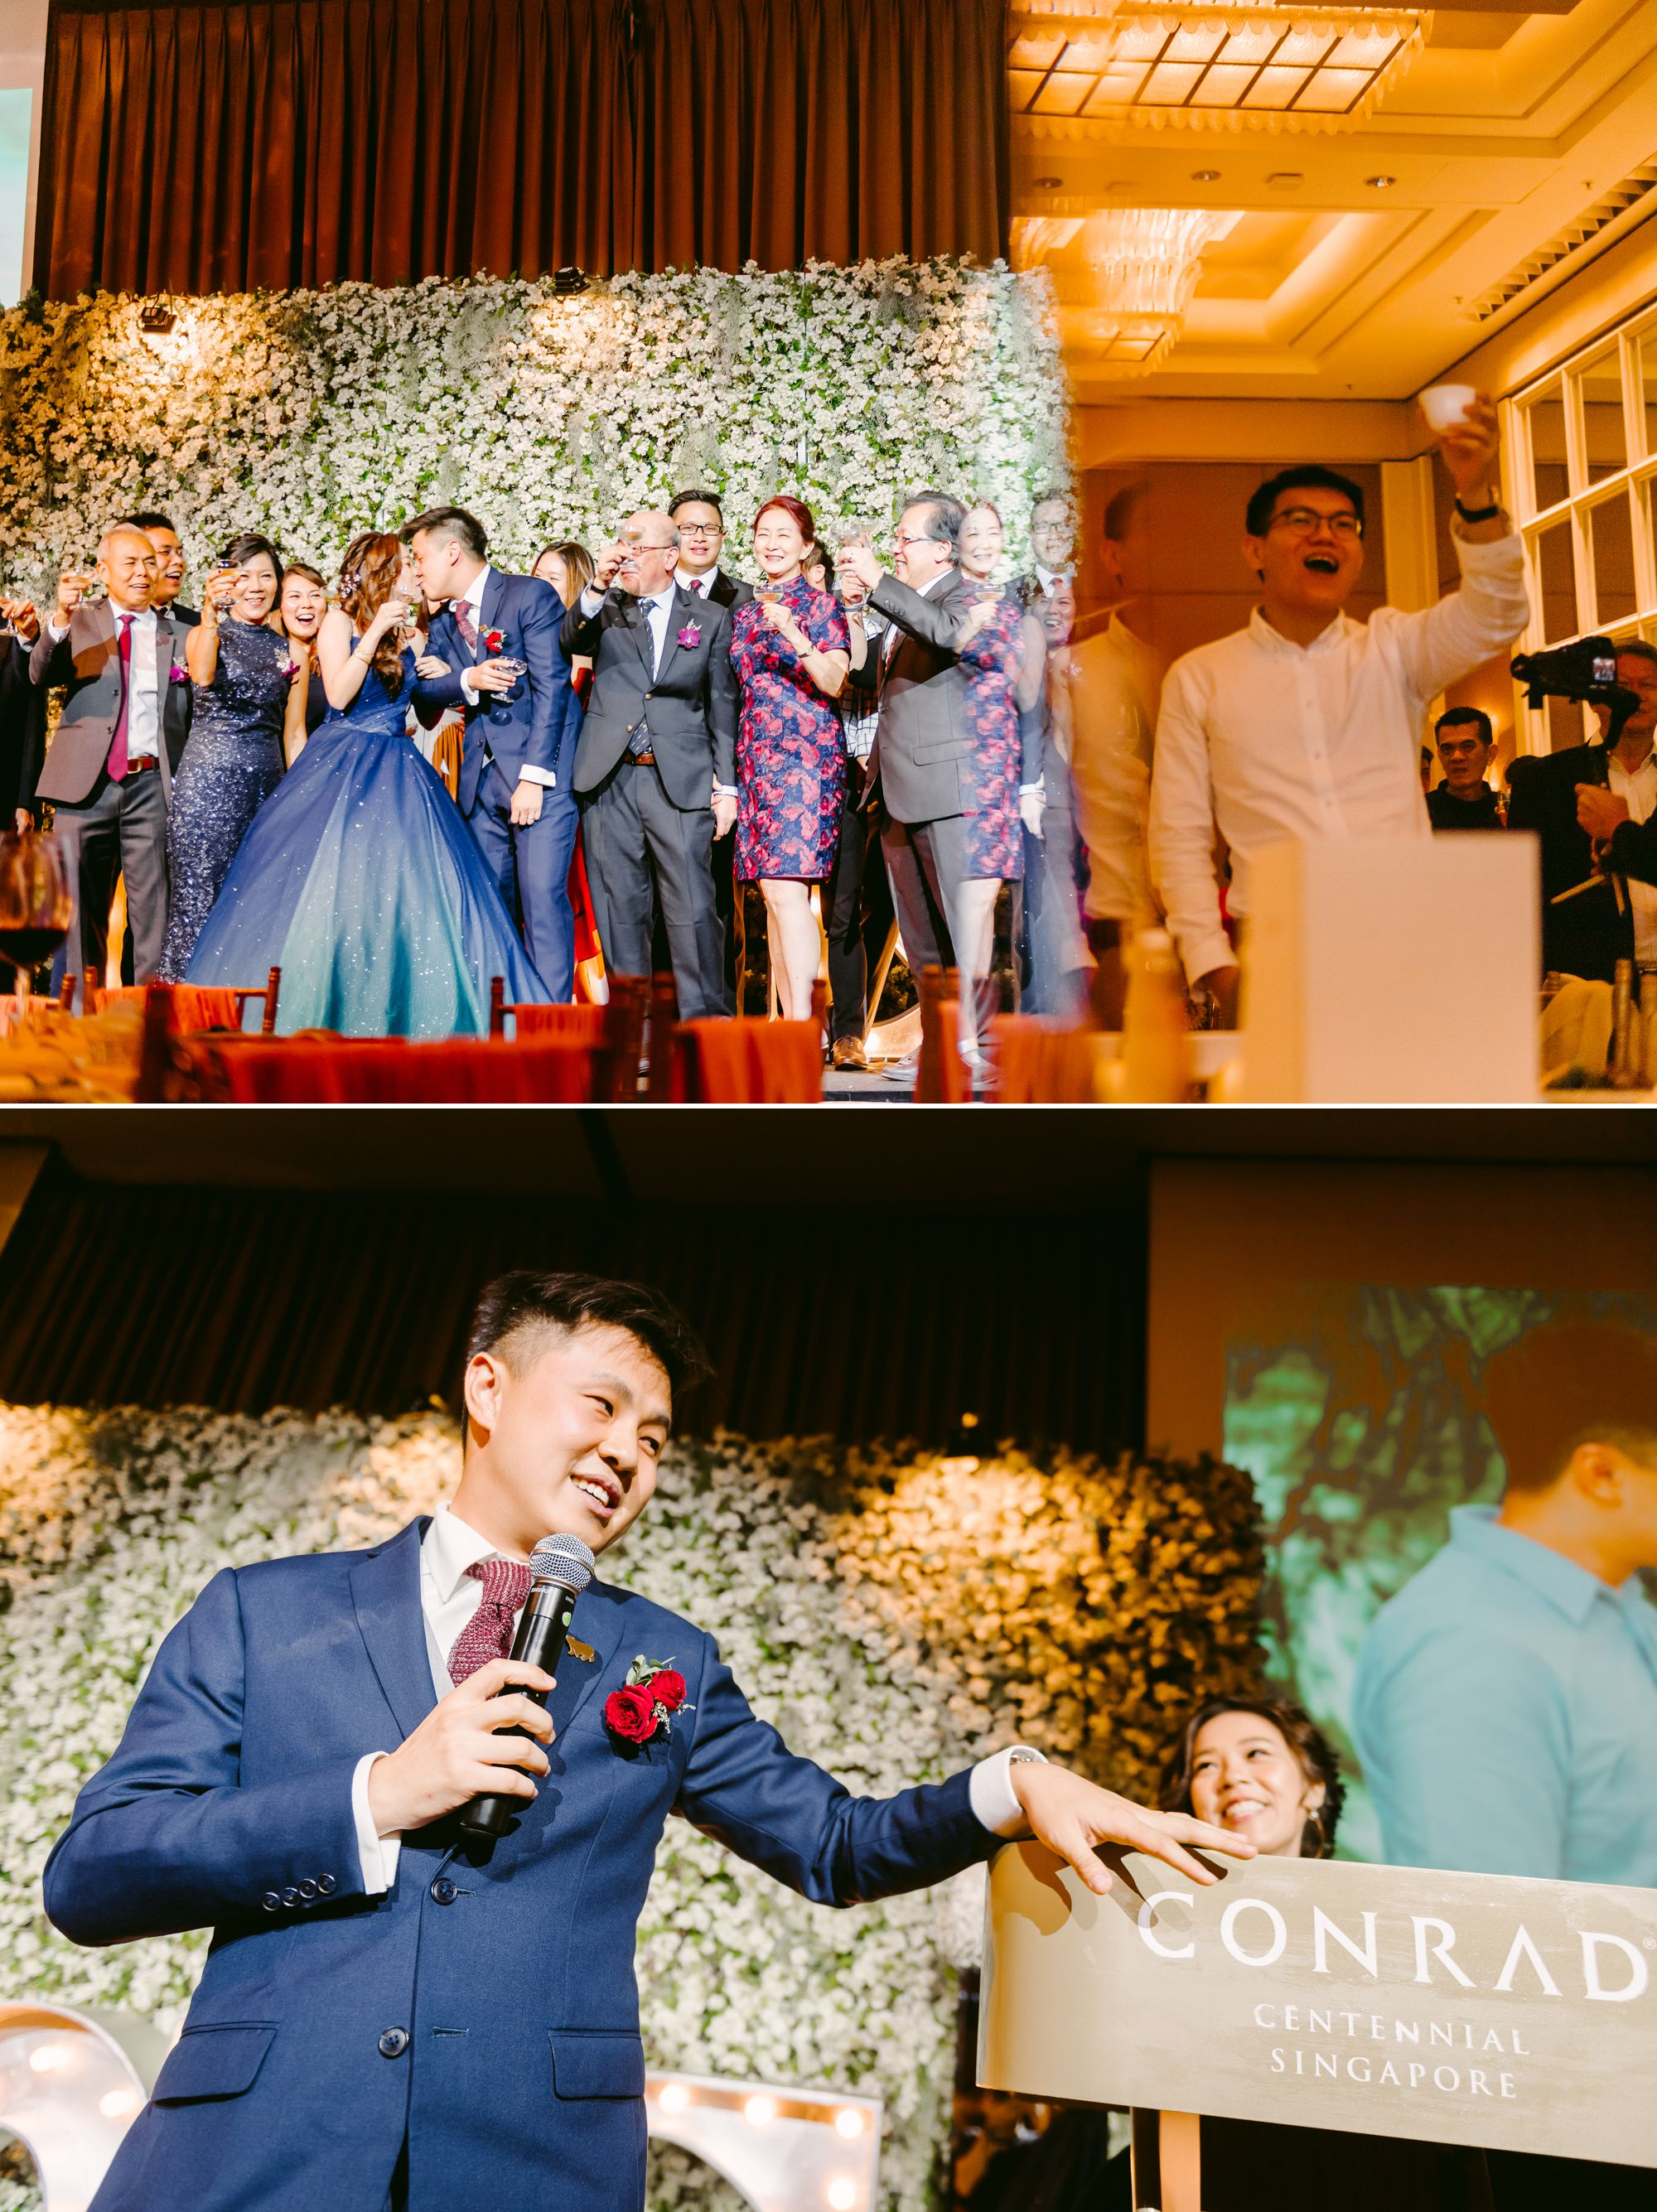 conrad_wedding_Singapore_ 43.jpg